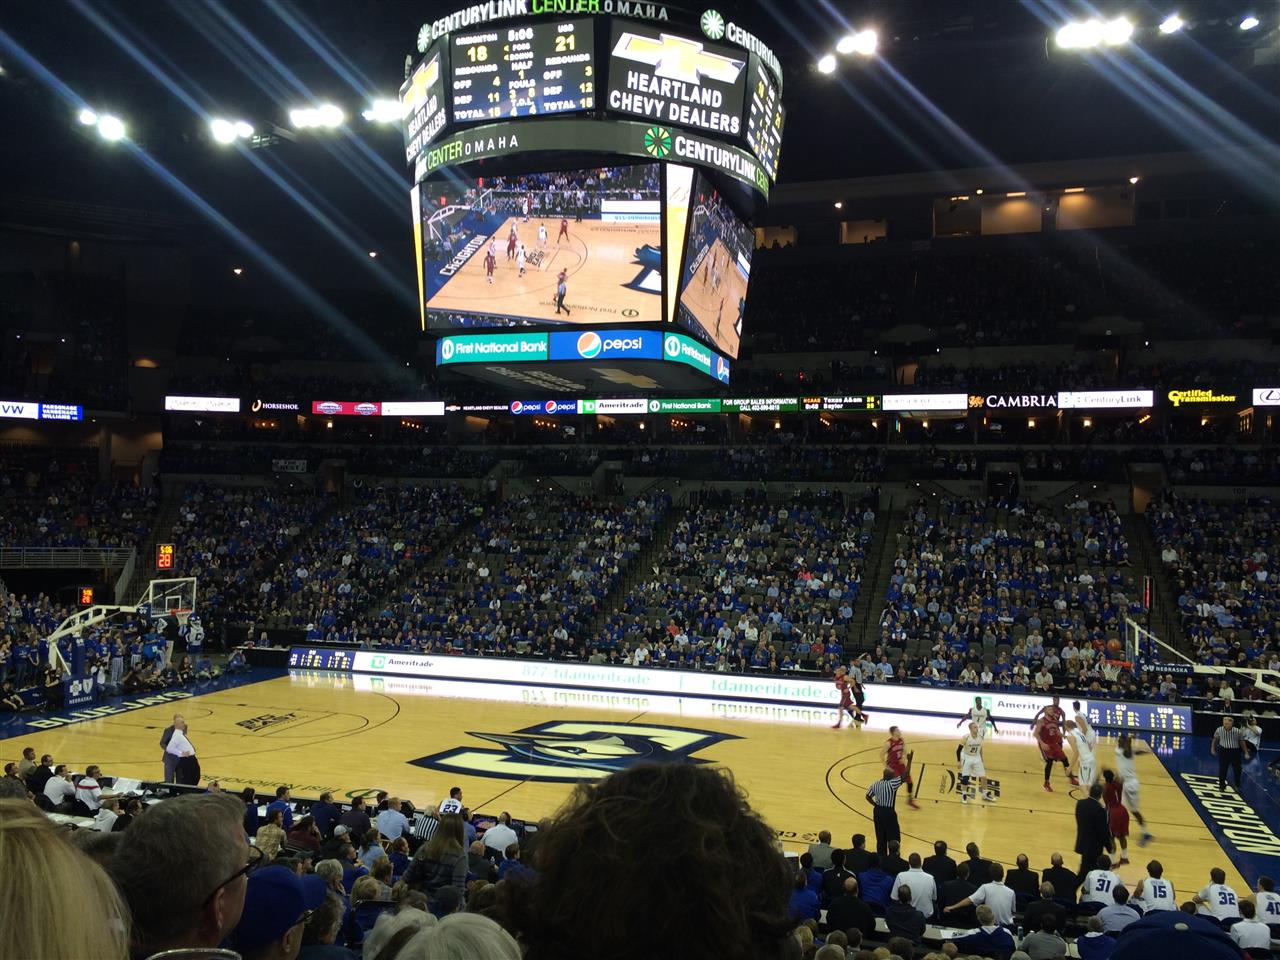 Creighton University Jays Men's Basketball Game - CenturyLlink Center, Downtown Omaha NE